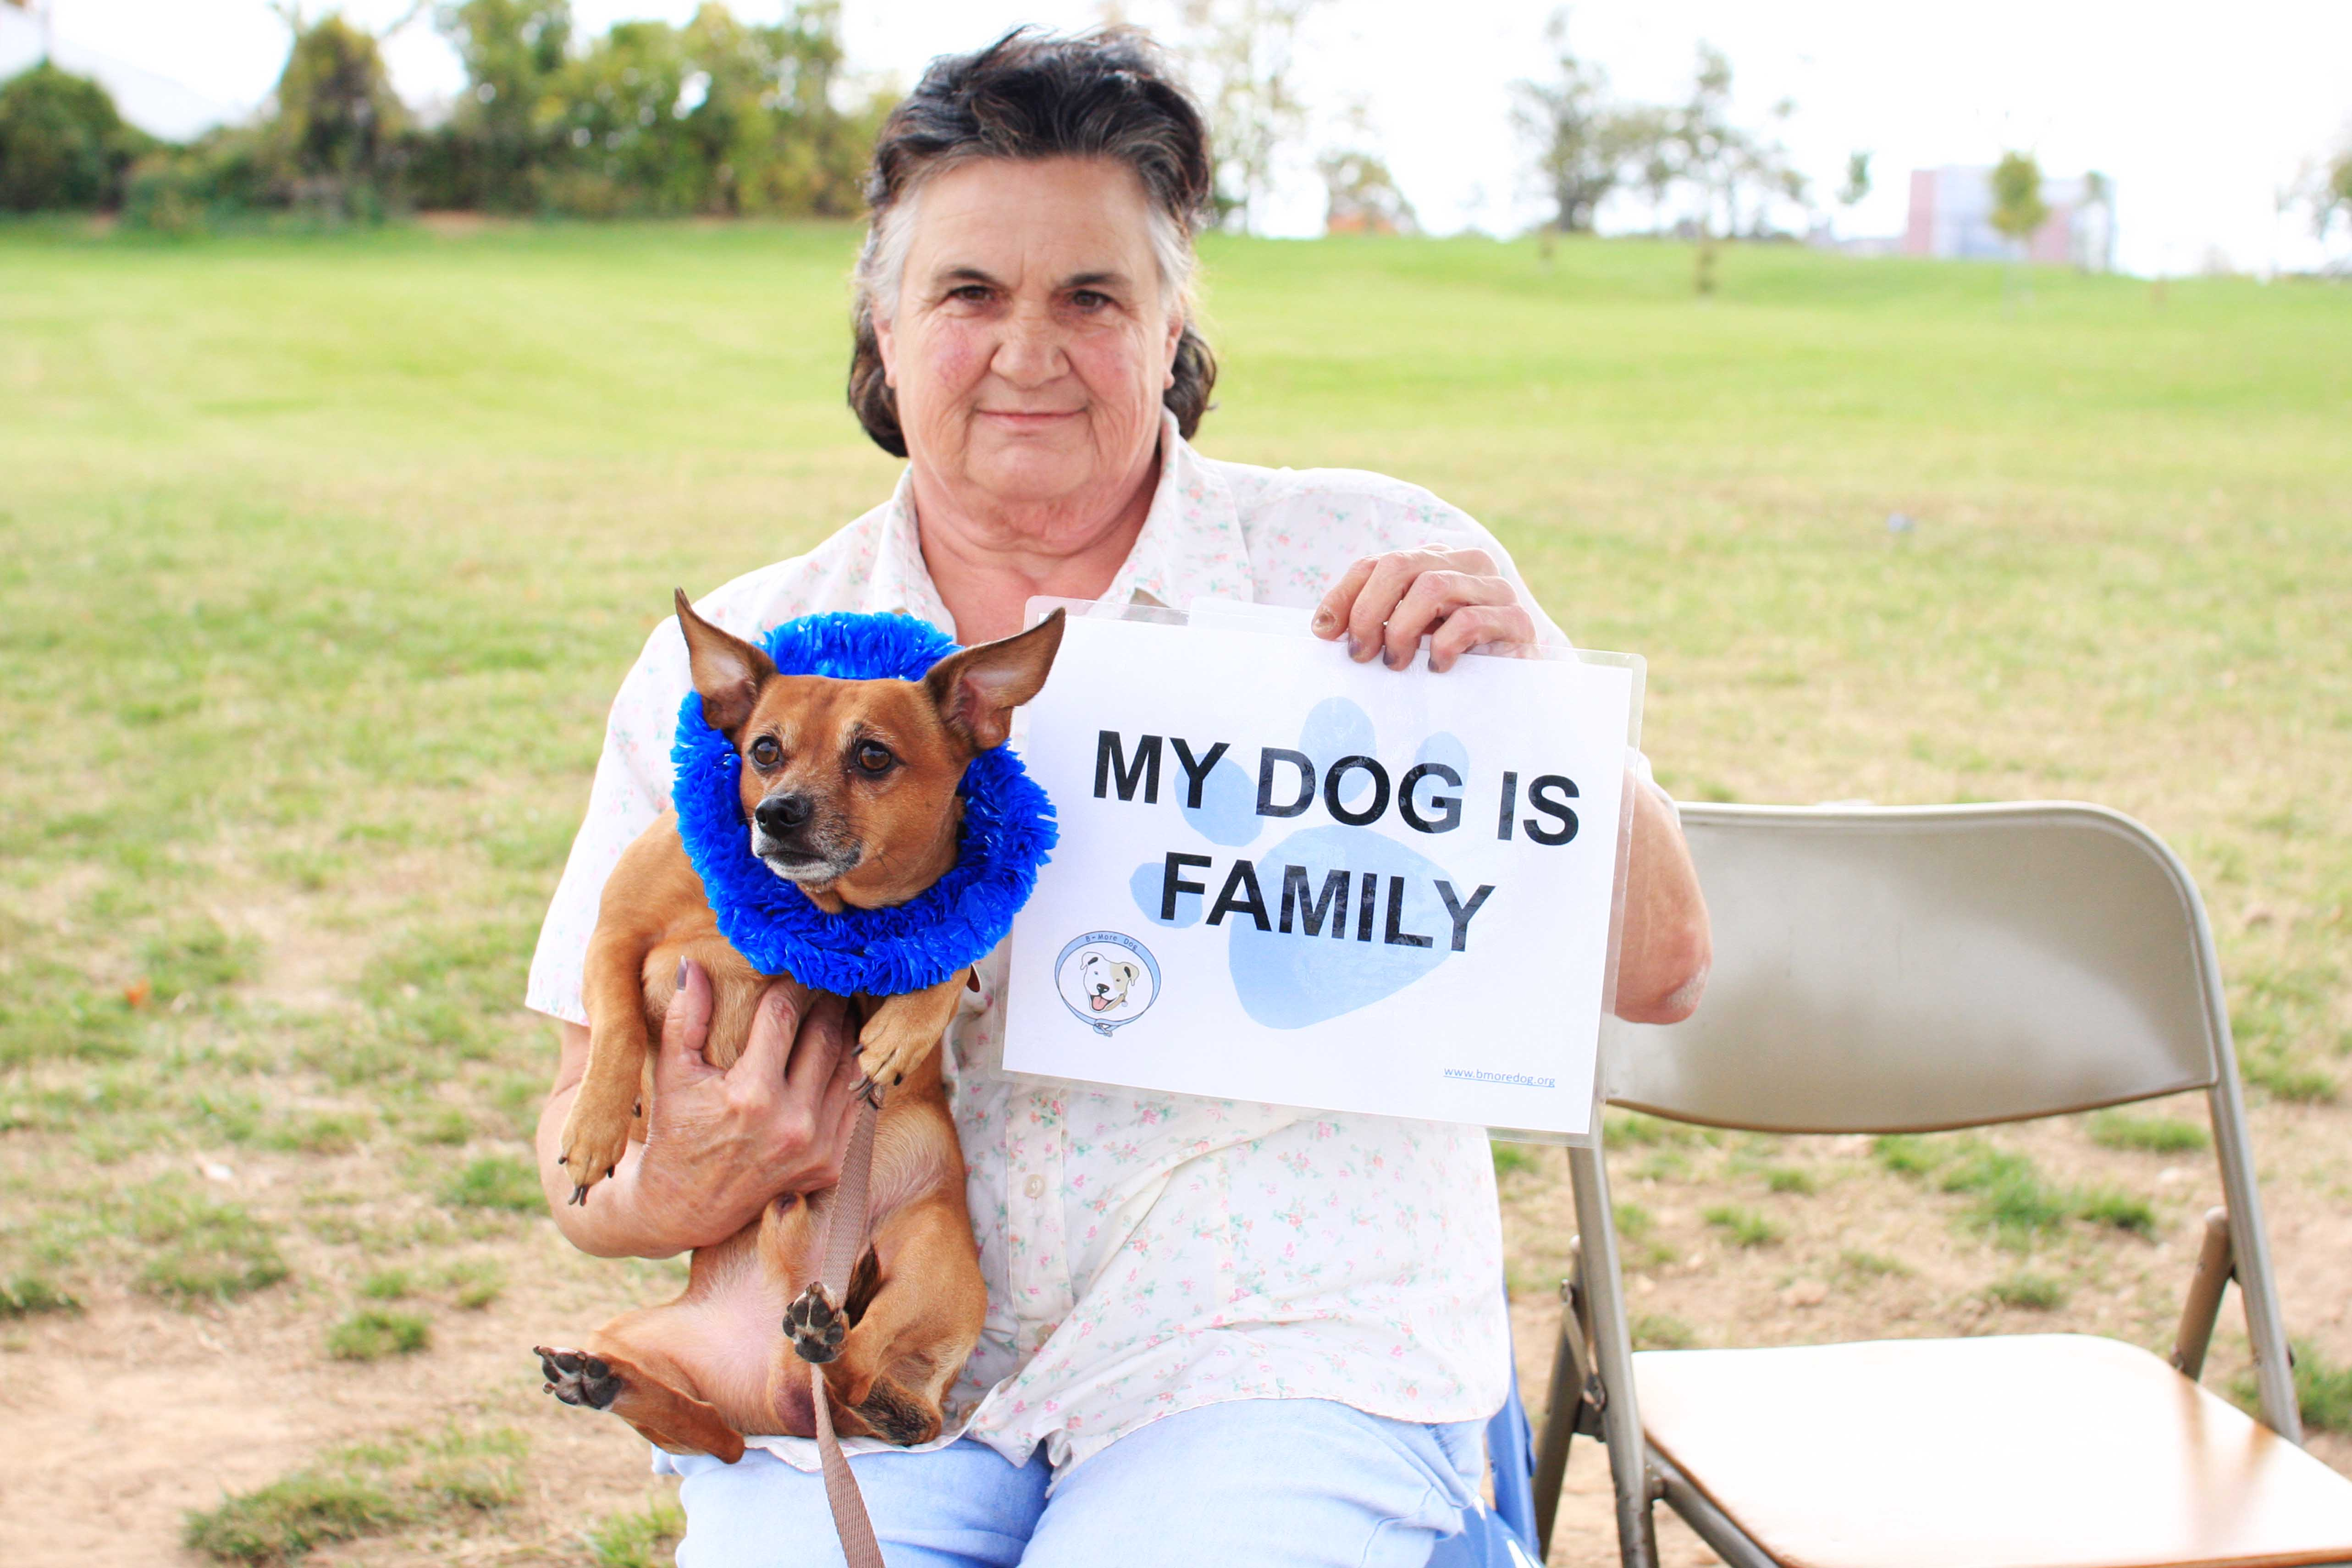 Homeless My Dog is my Family